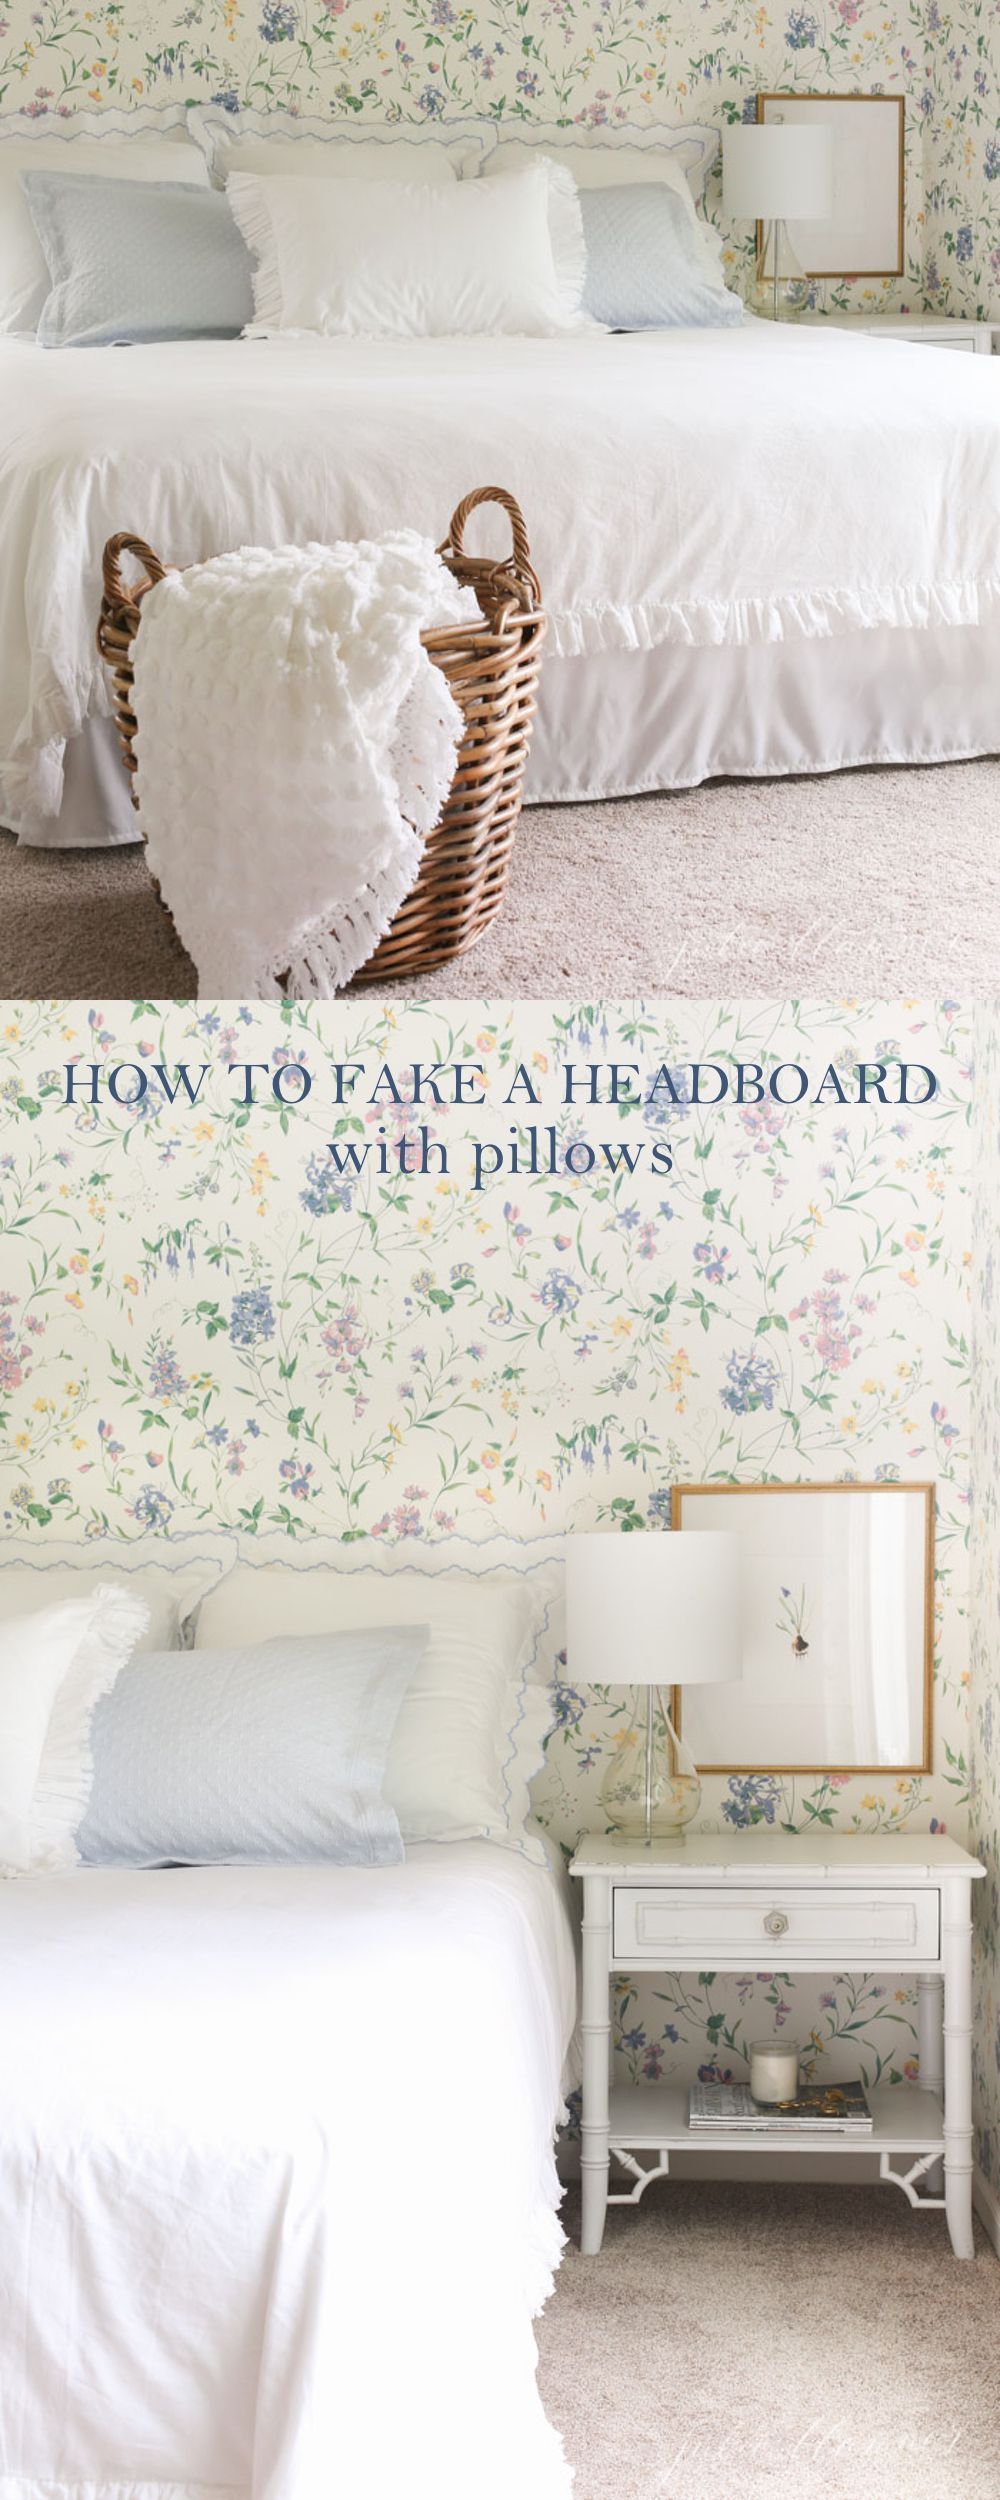 How to Fake a Headboard with Pillows - easy home decor - decorating ...